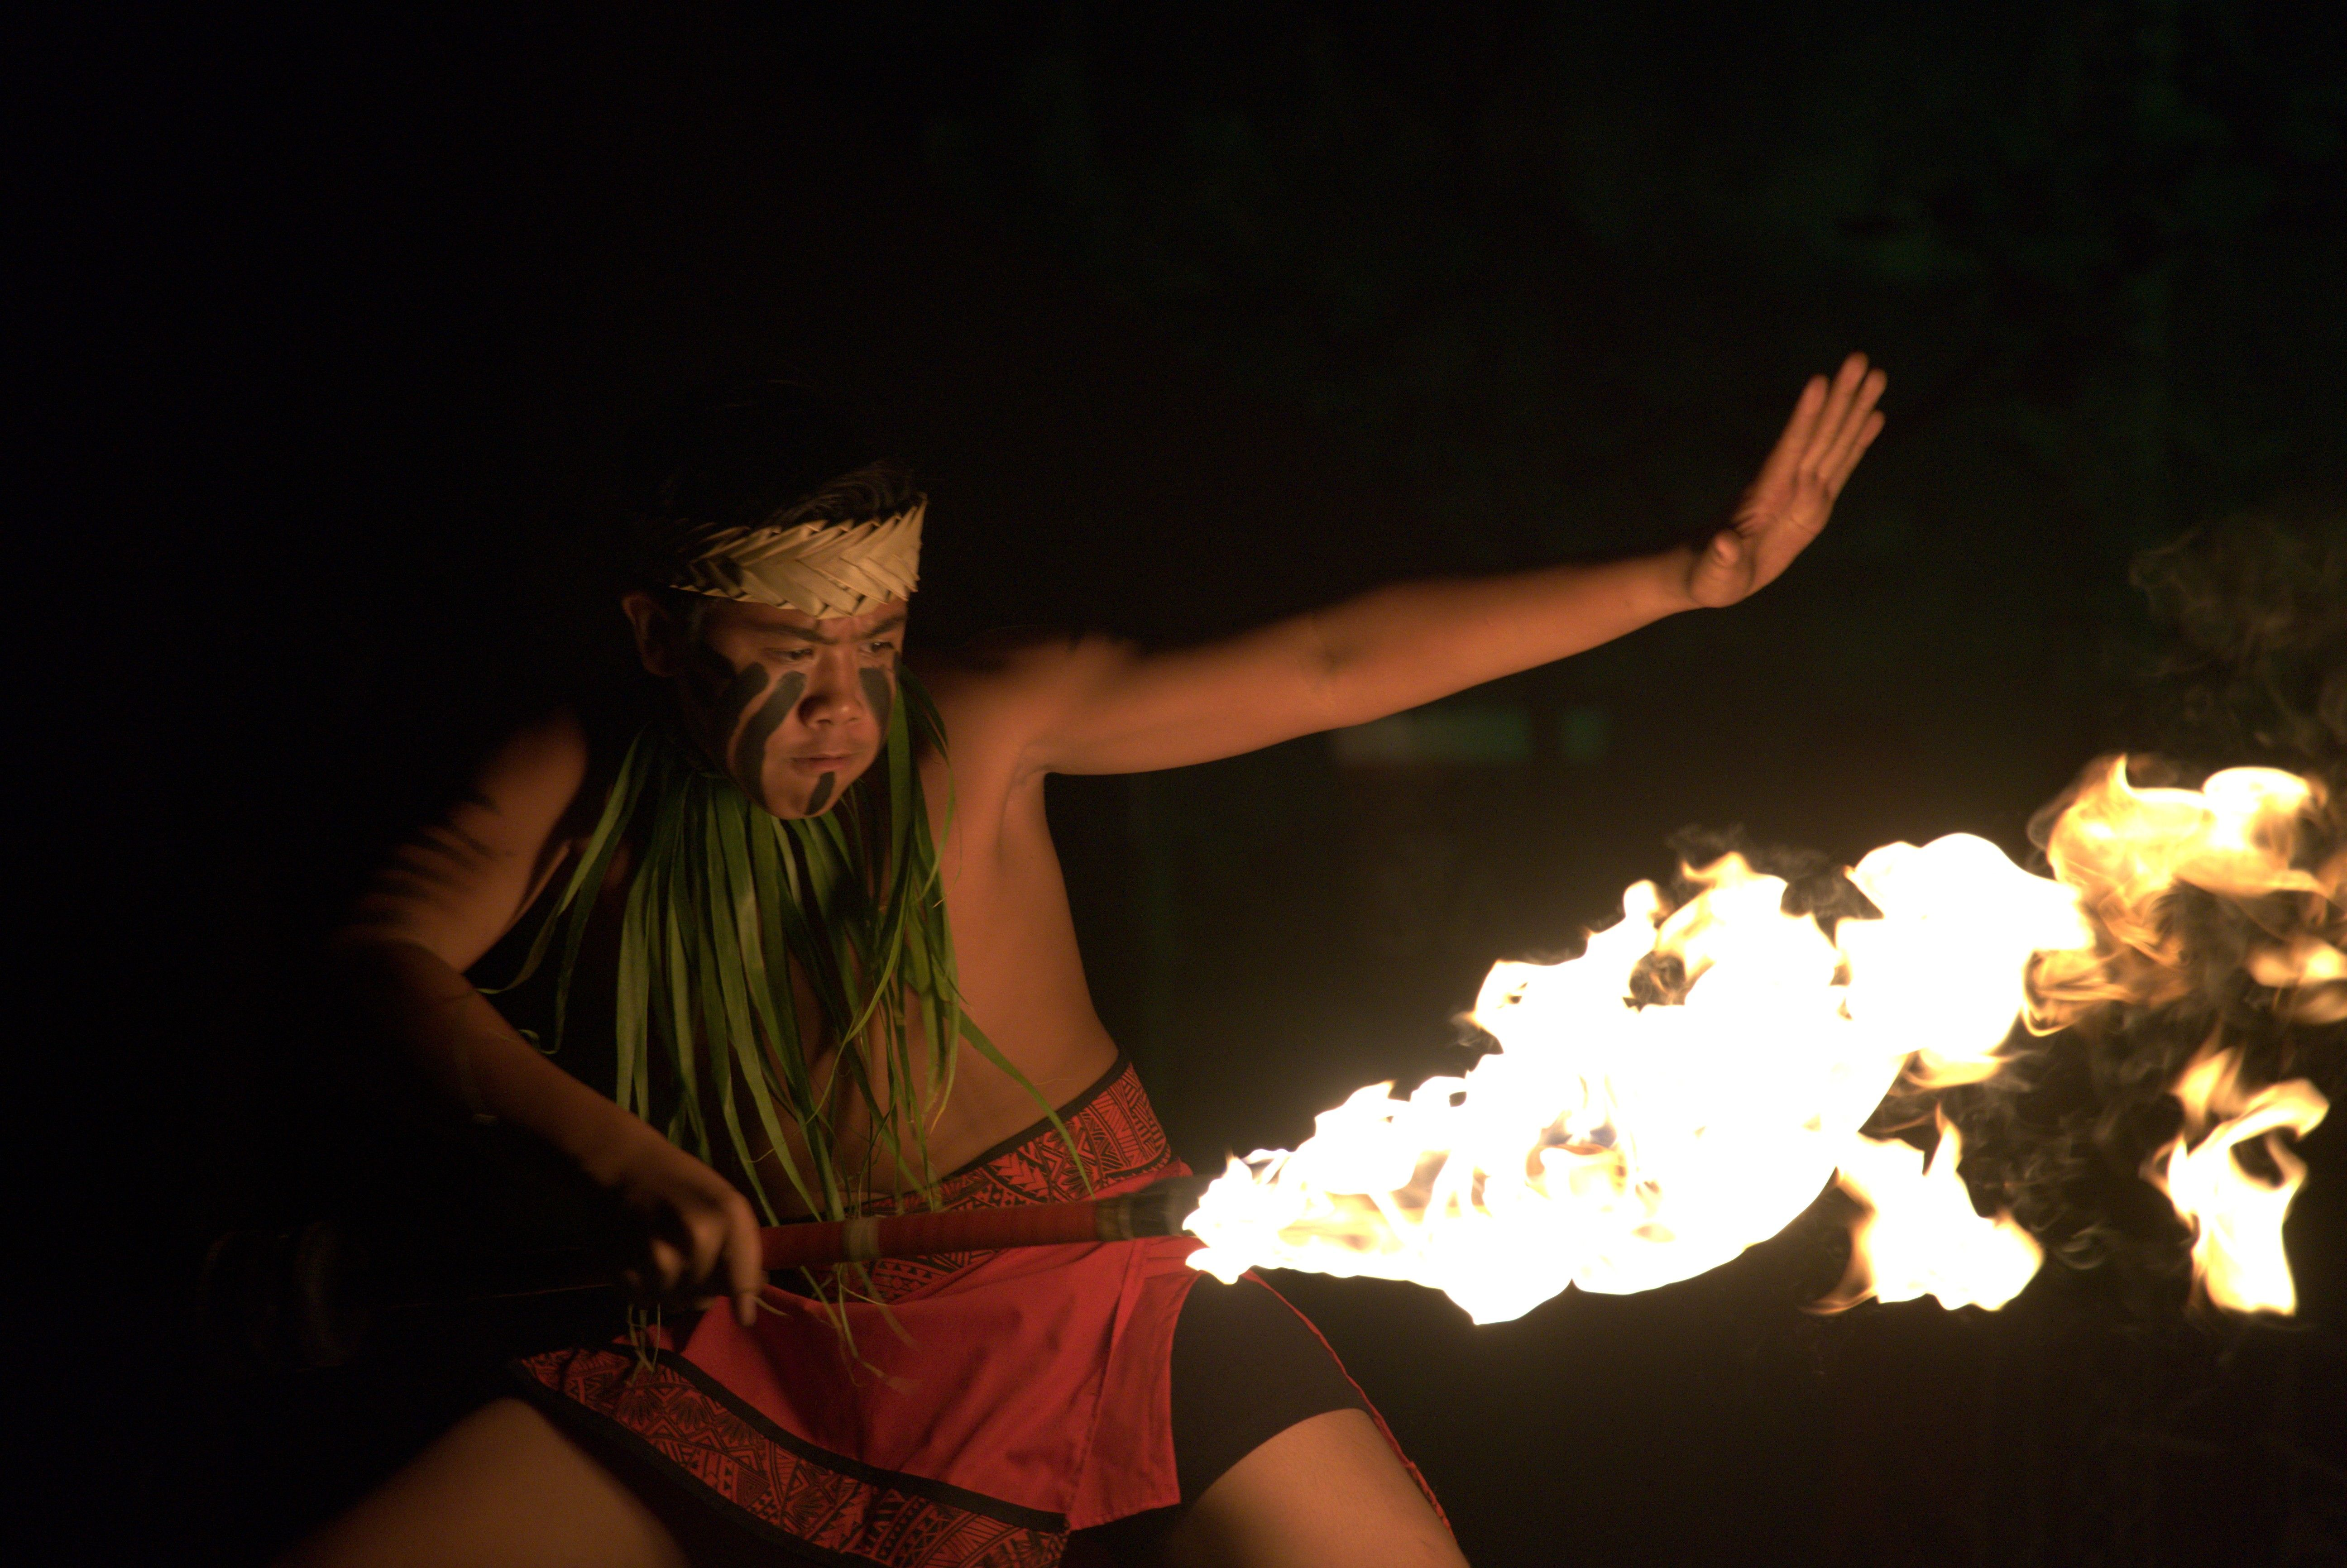 photograph of Matagi Lilo, winner of the Intermediate Section of the 27th Annual World Fireknife Competition